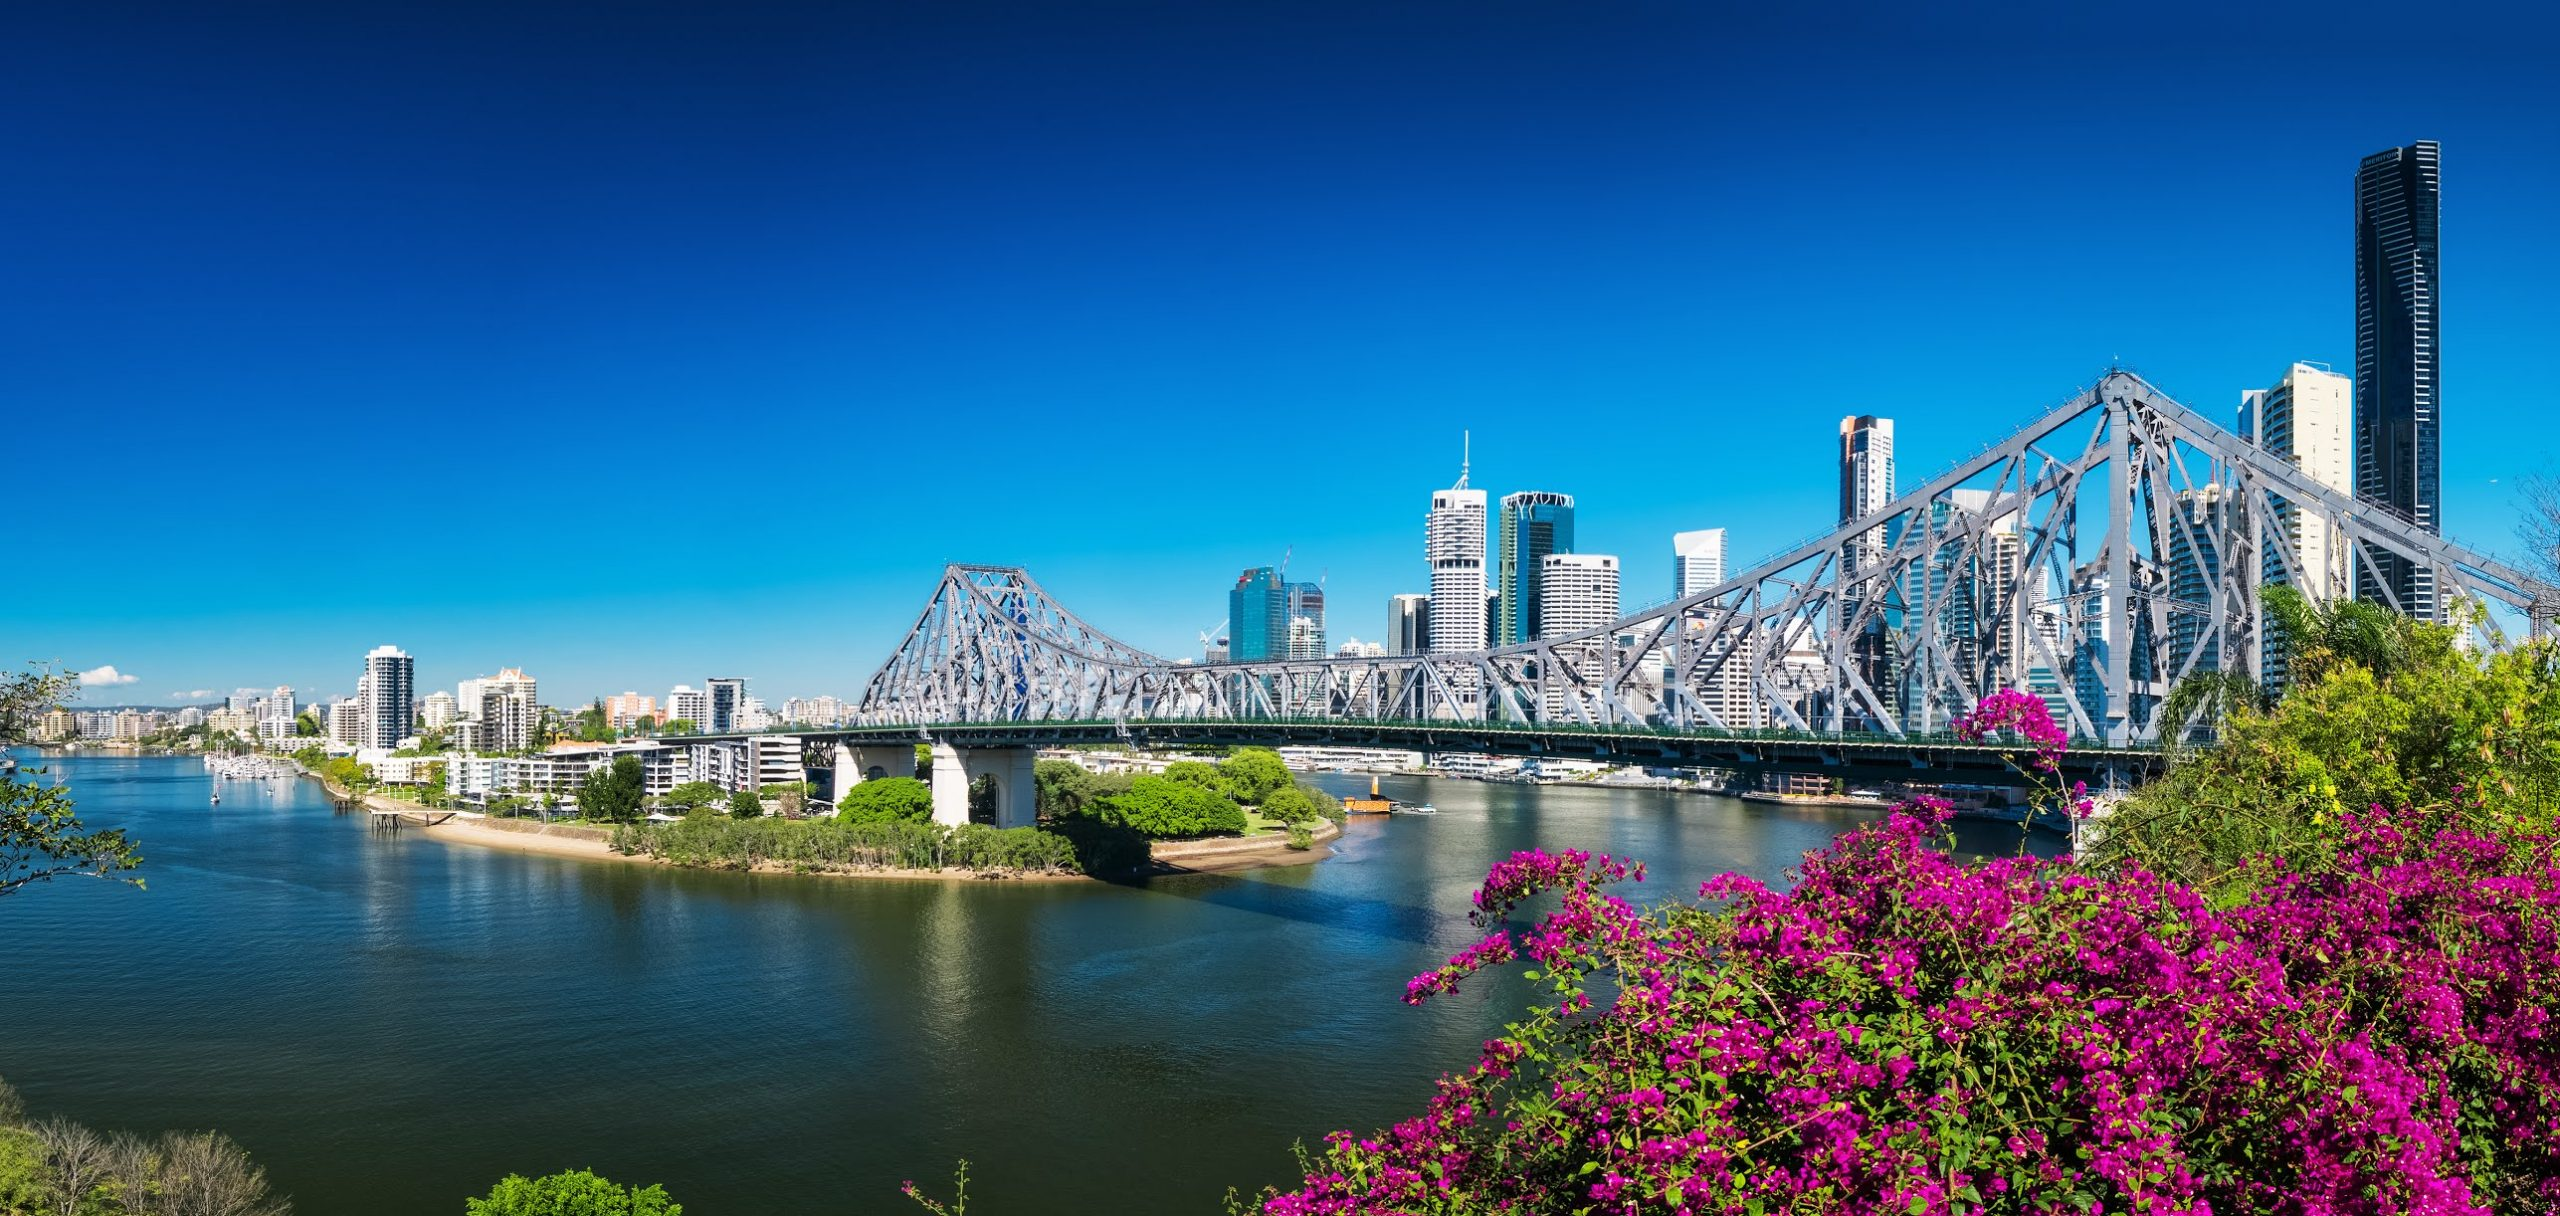 Story Bridge in daylight